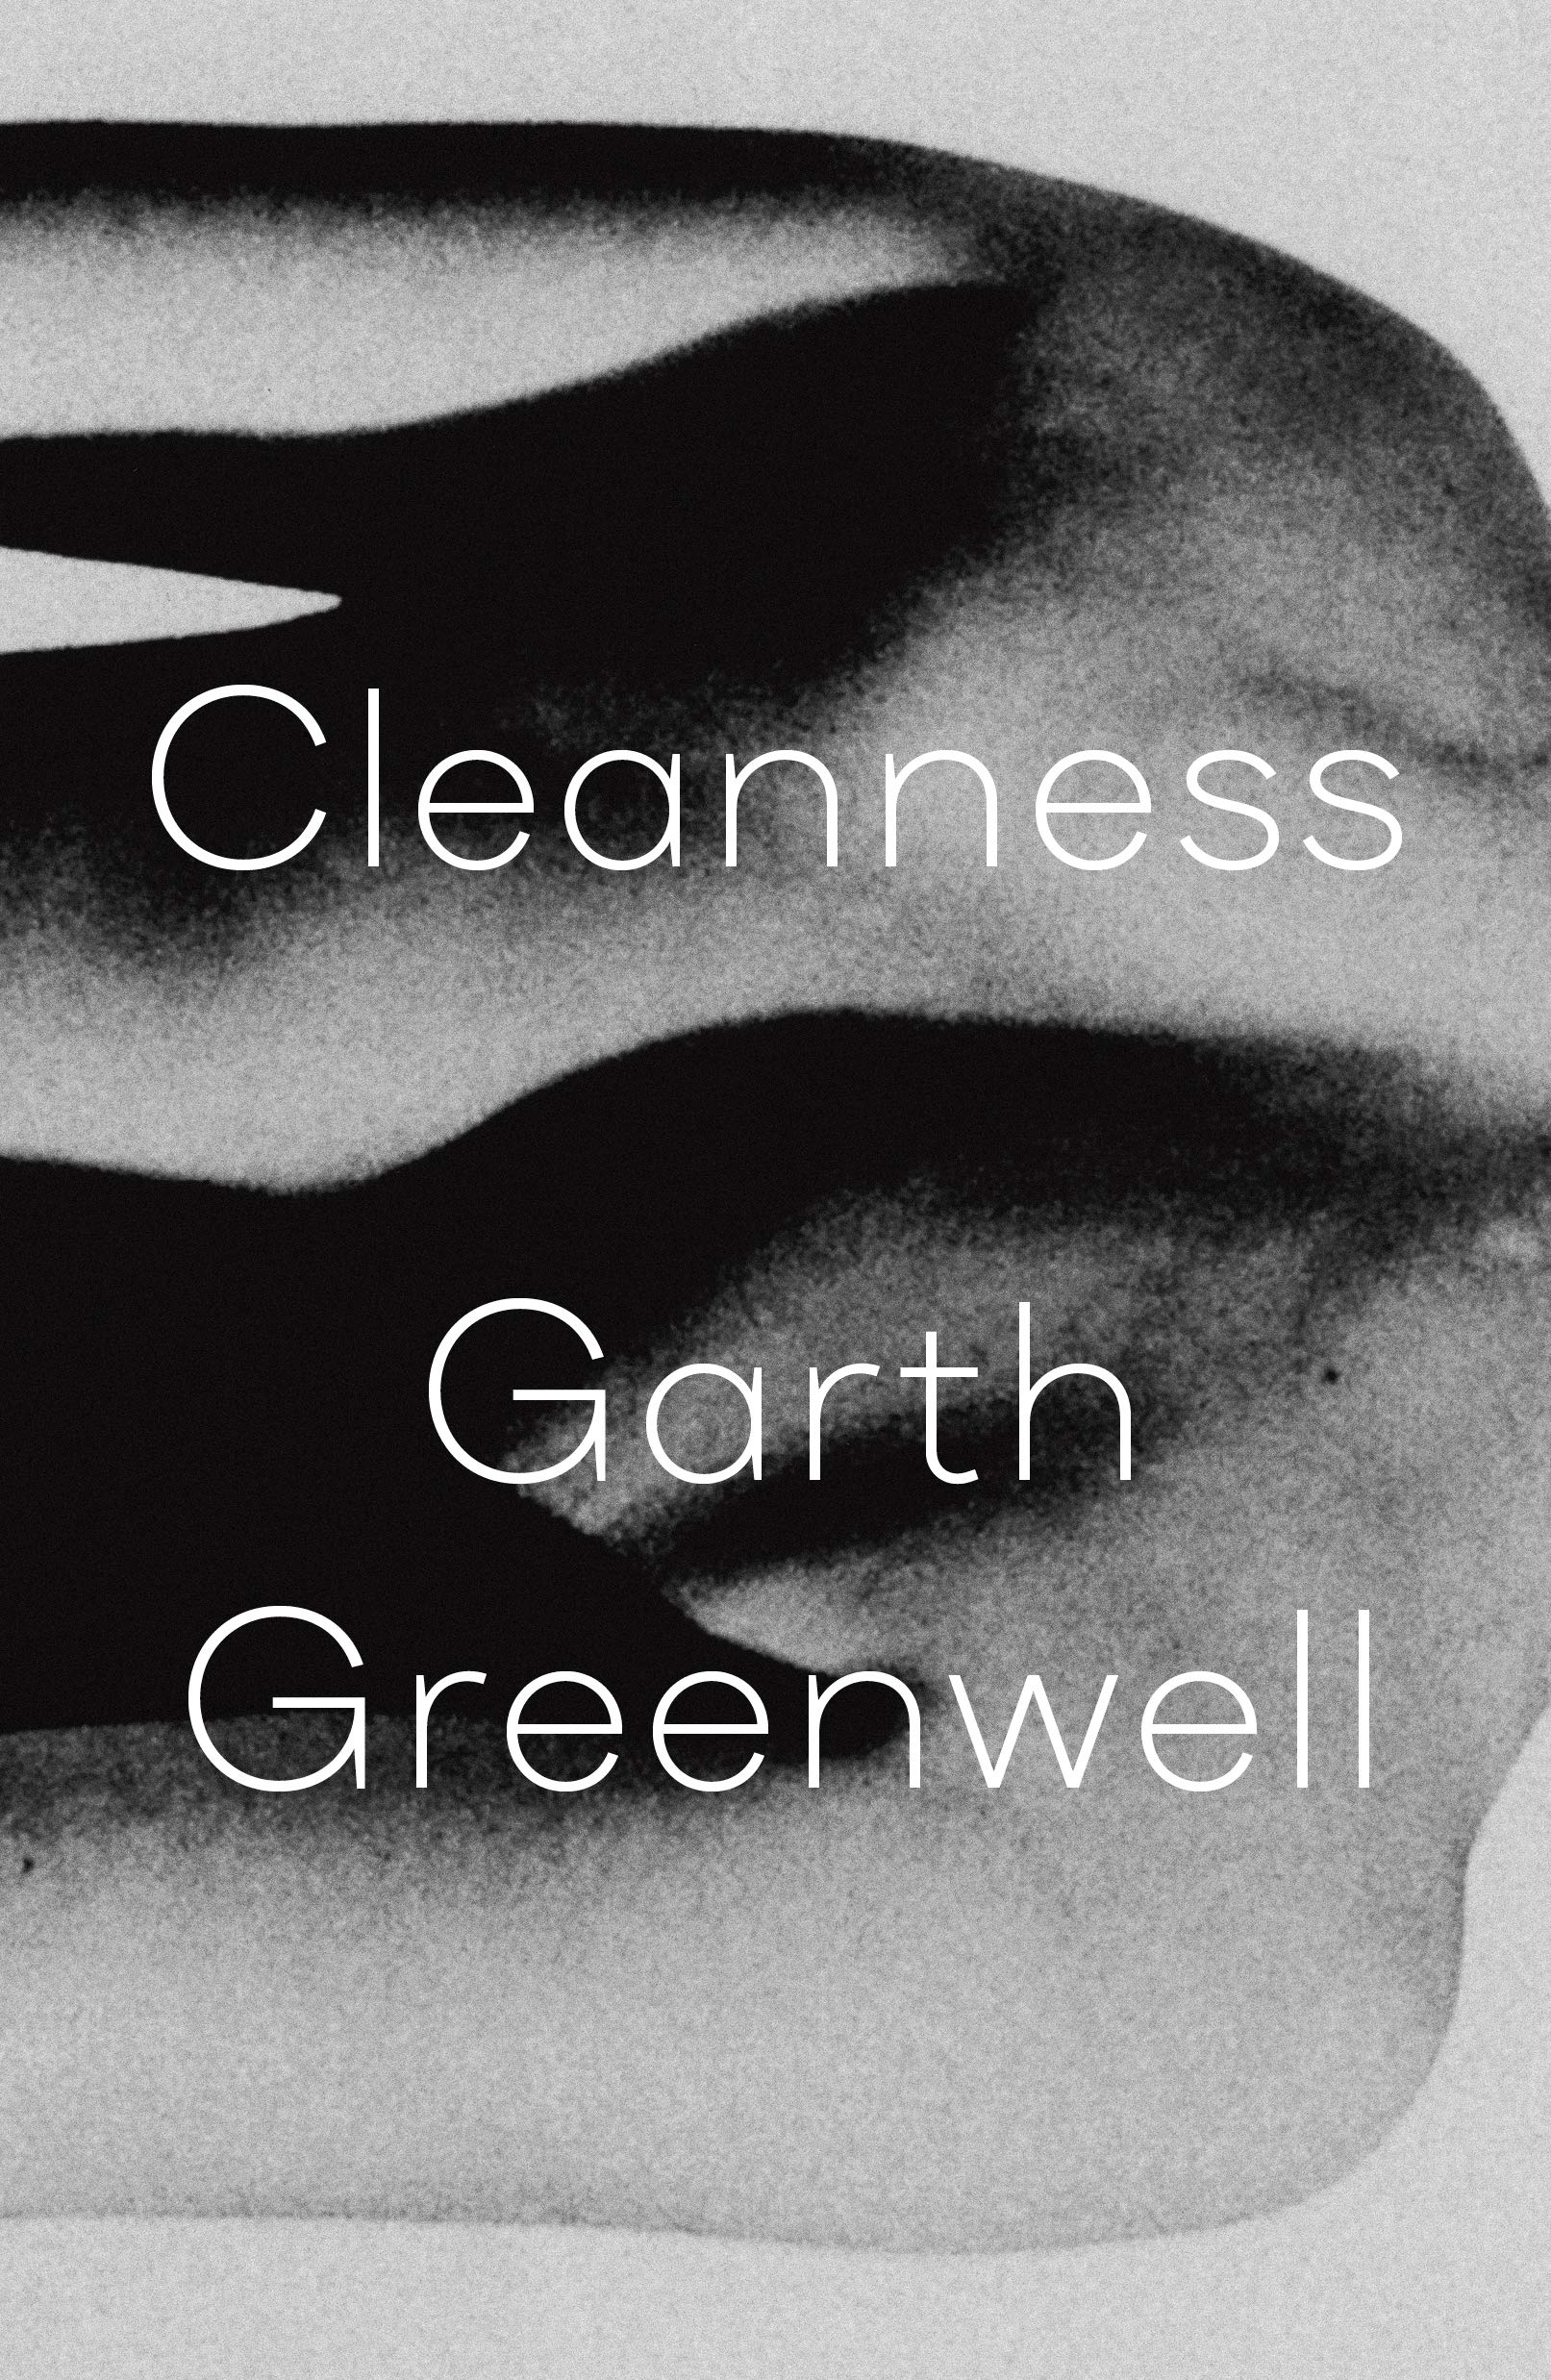 Cleanness: Greenwell, Garth: 9780374124588: Amazon.com: Books